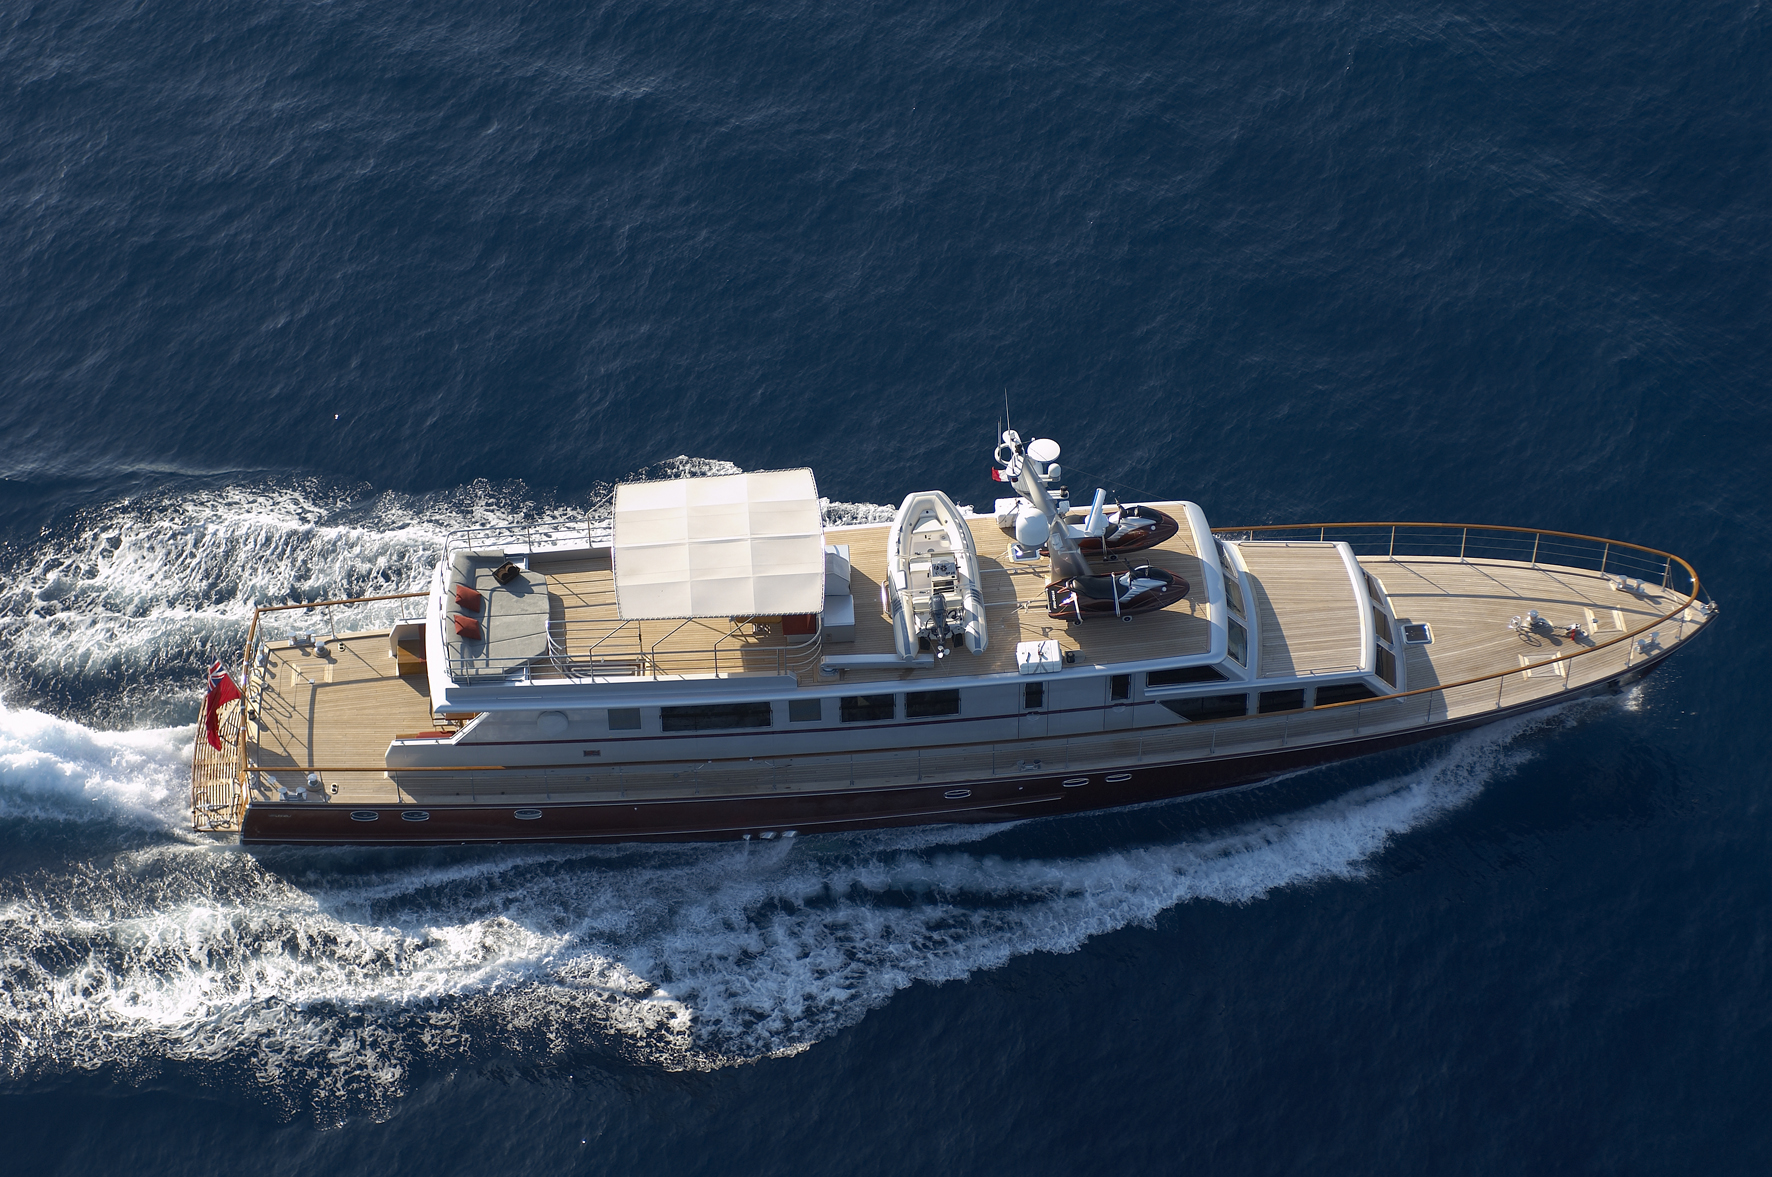 Classic Yacht TEMPEST WS - From Above